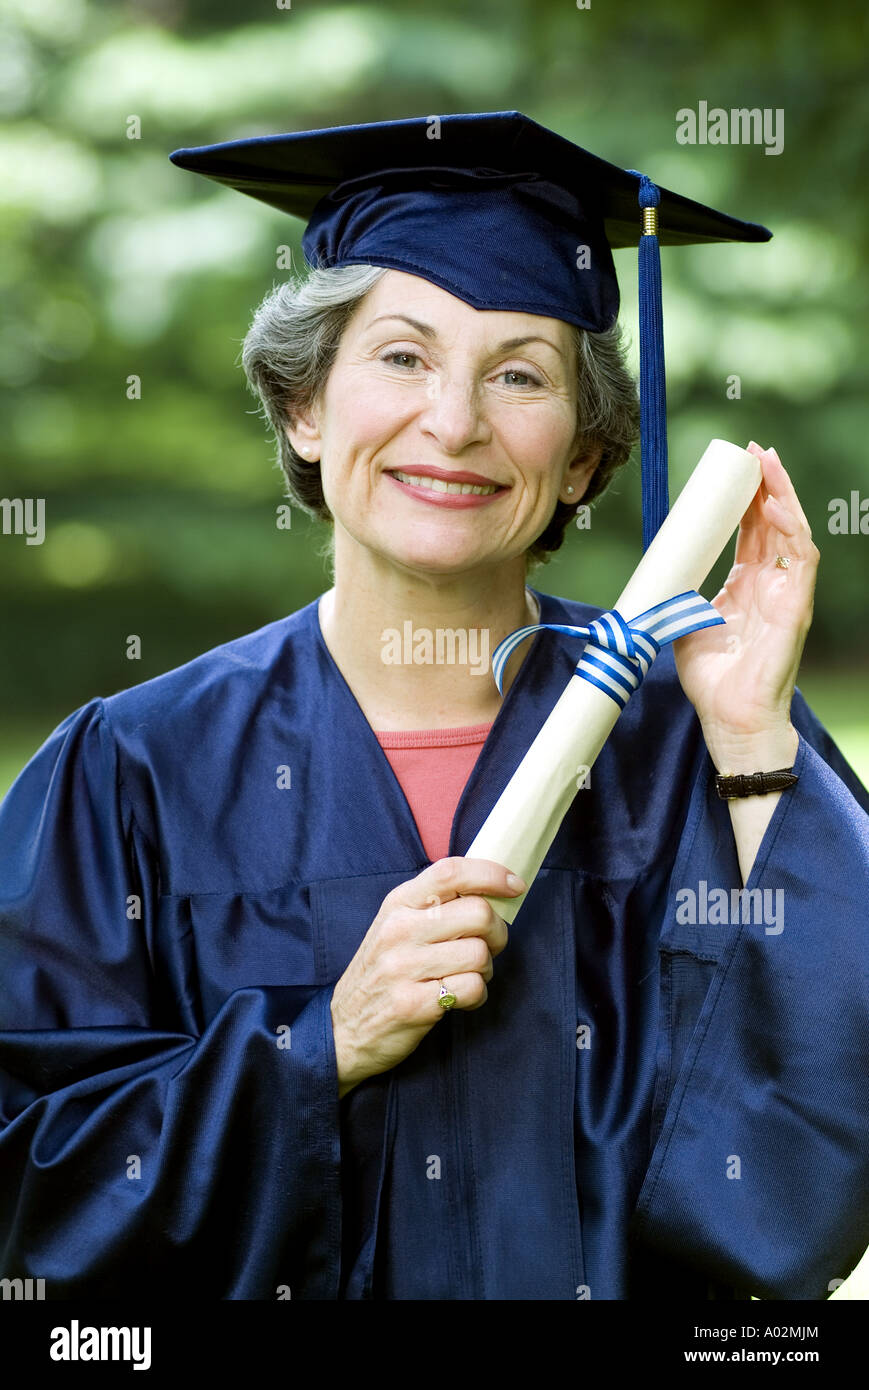 Smiling senior citizen woman college graduate with diploma - Stock Image